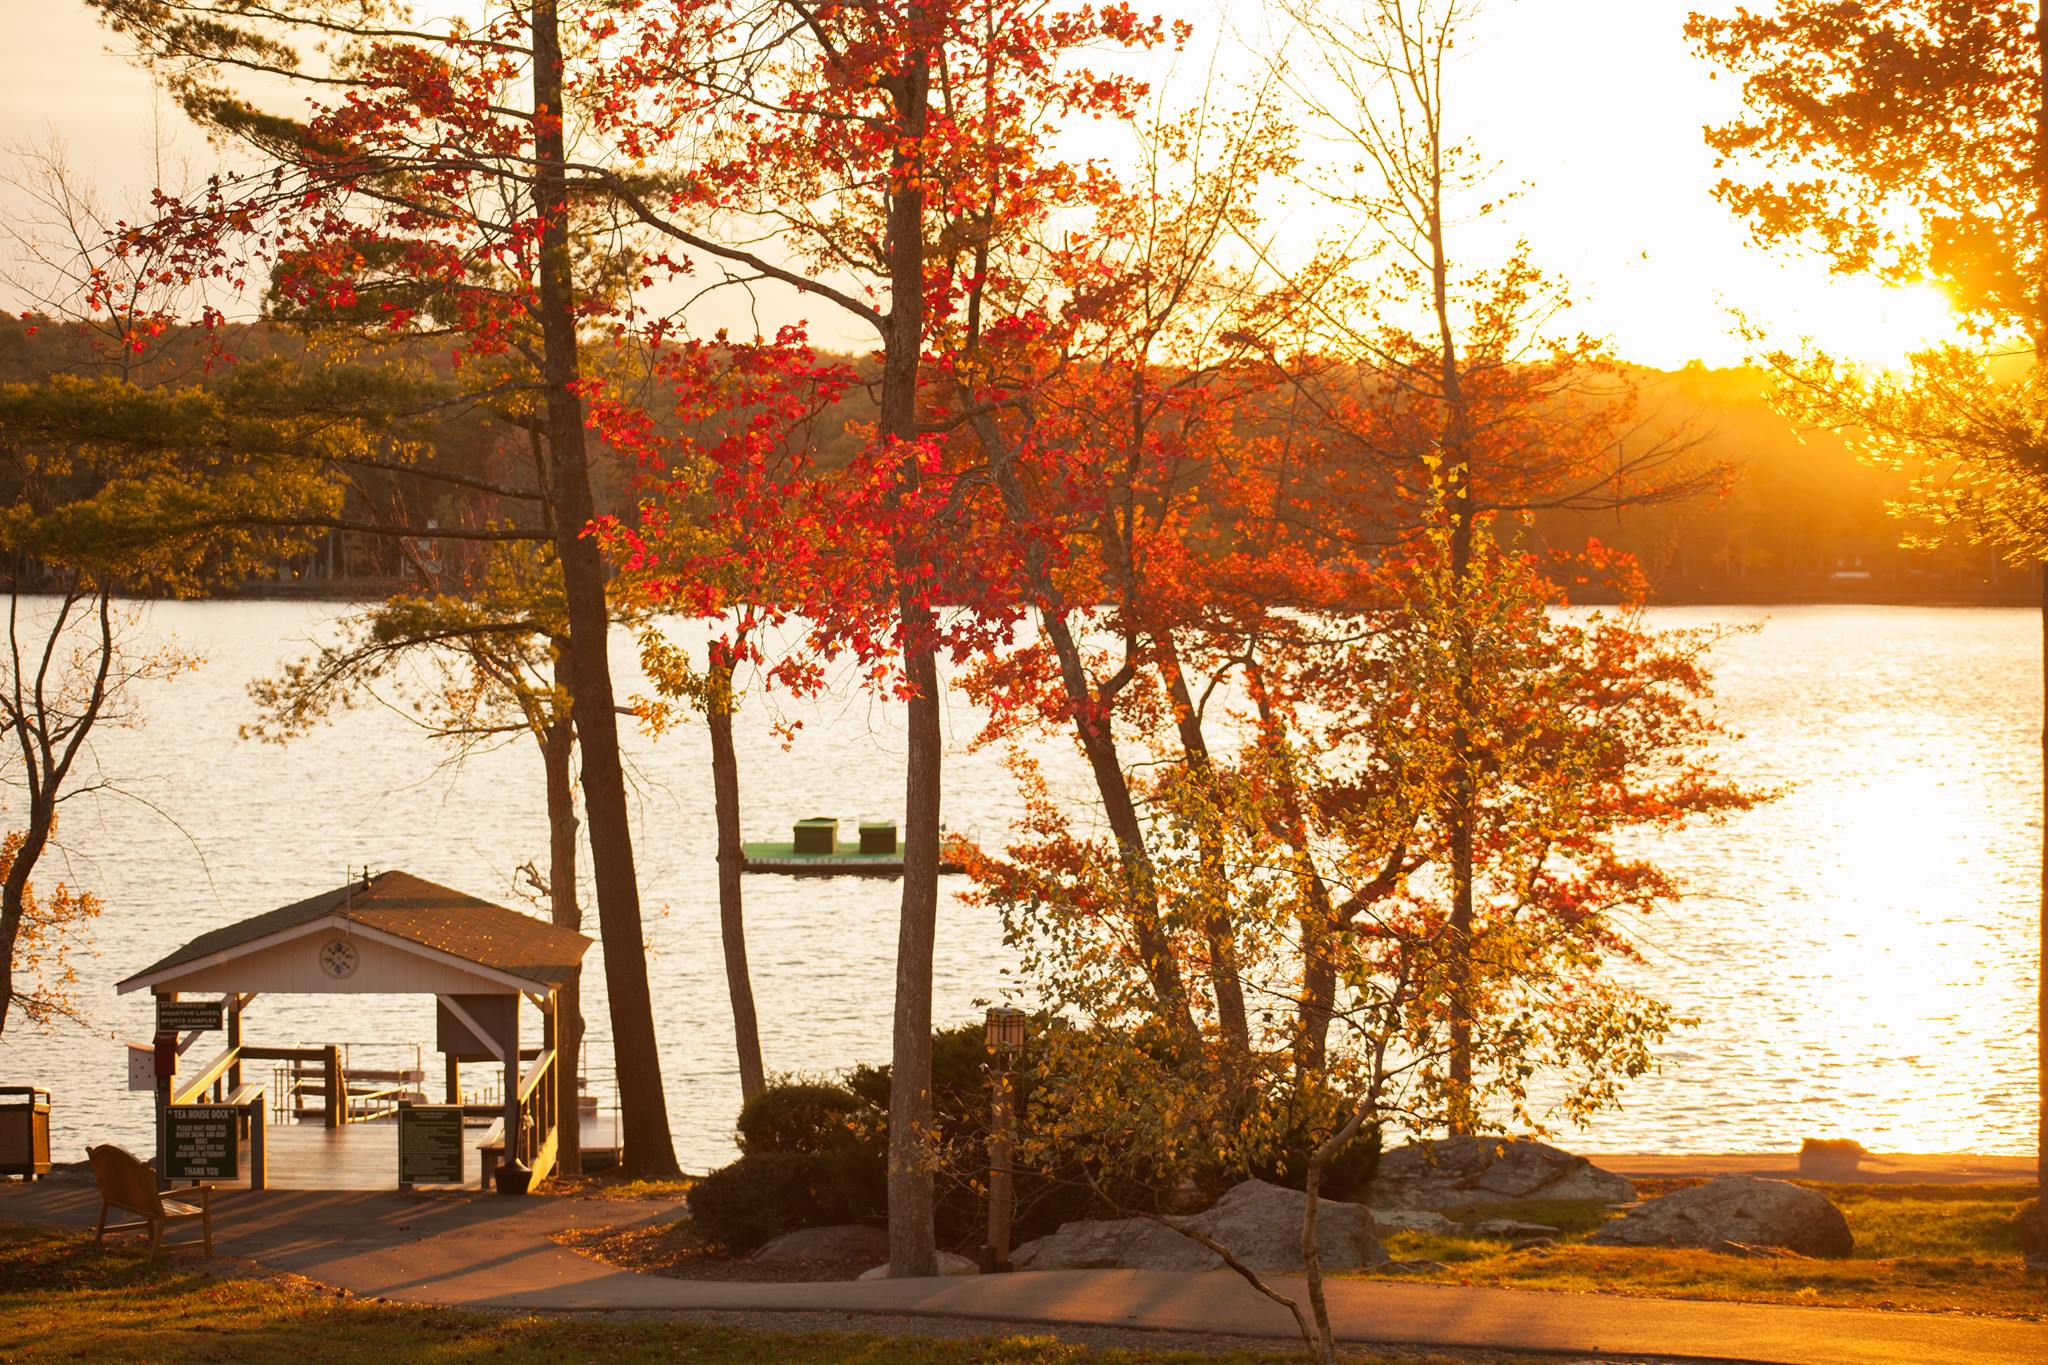 Woodloch-Pines-Resort-Pocono-Mountains-in-Fall